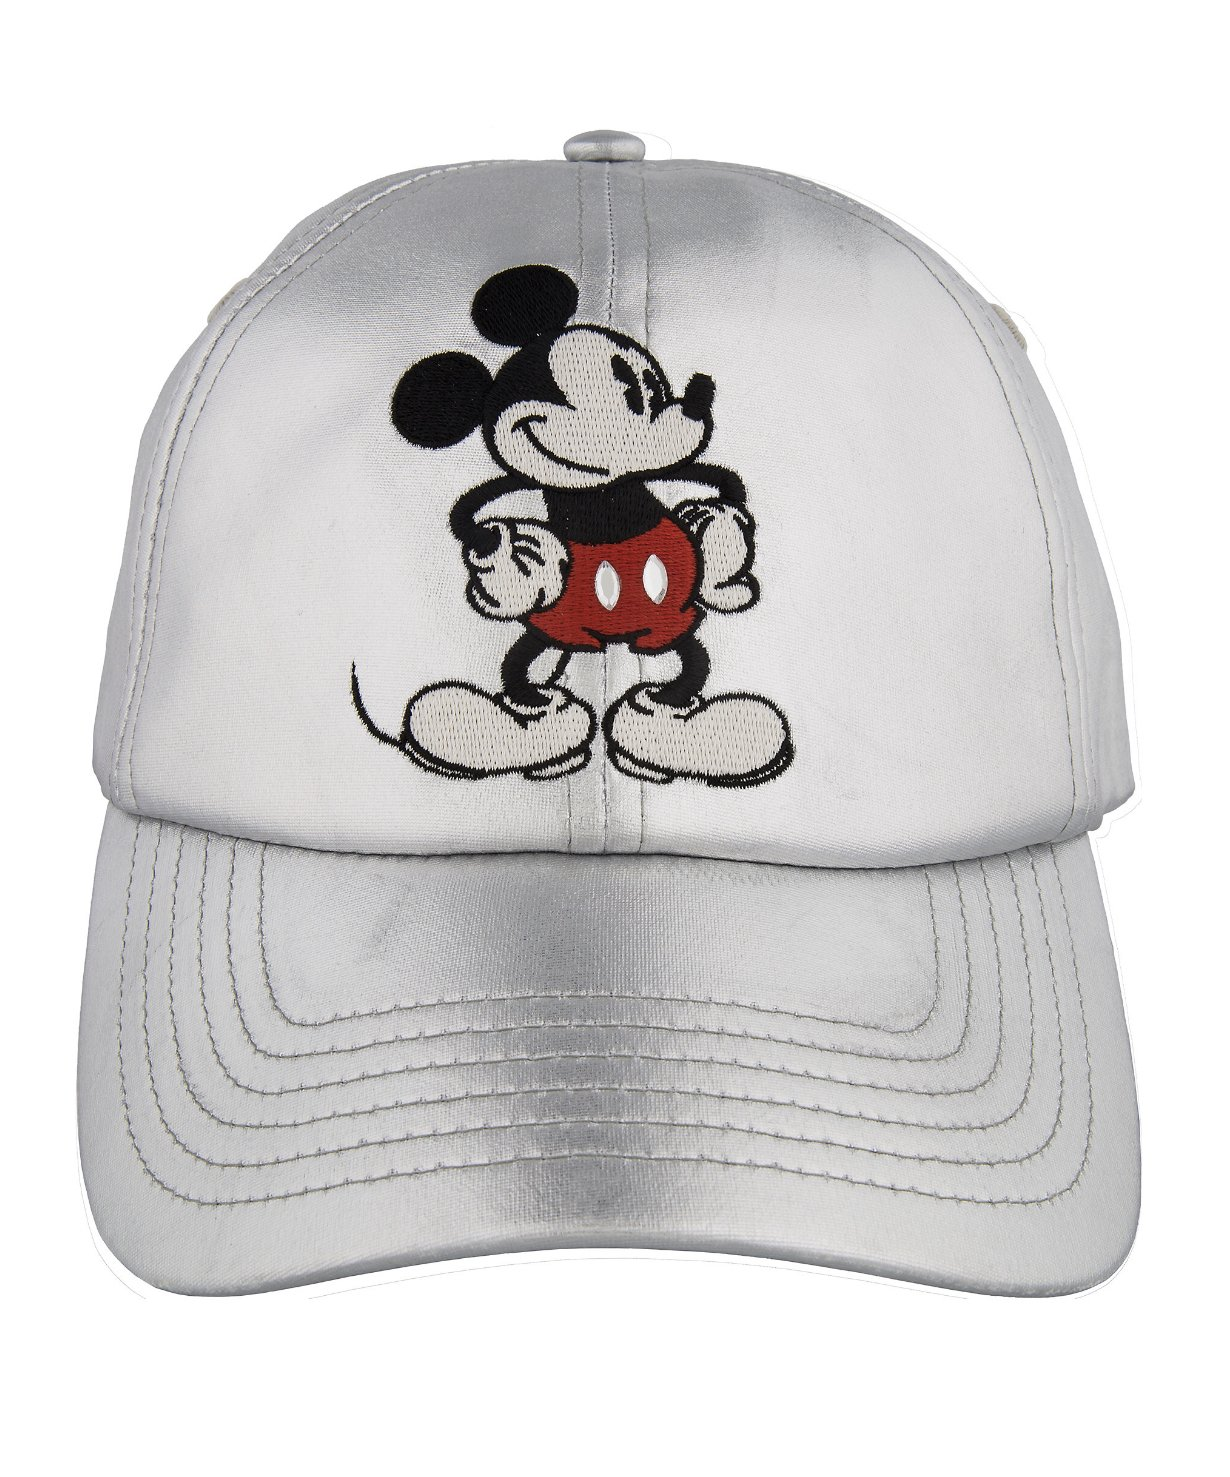 DisneyParks Mickey Mouse Satin Baseball Cap Hat